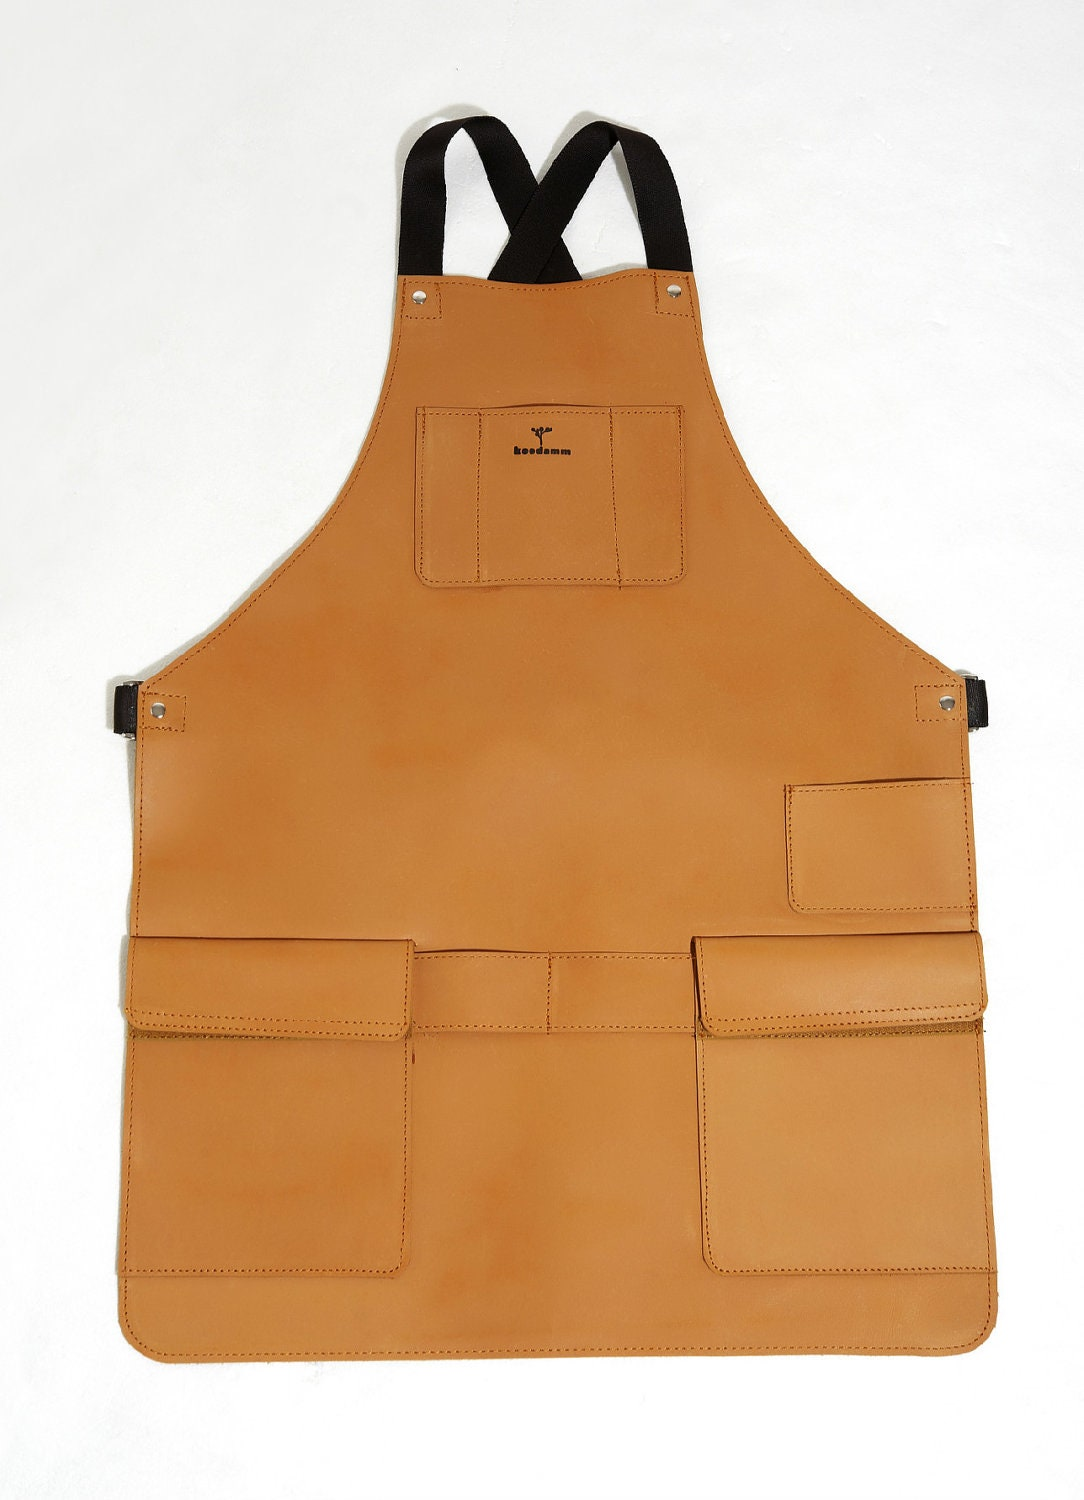 Woodworking Apron Leather With Popular Trend | egorlin.com